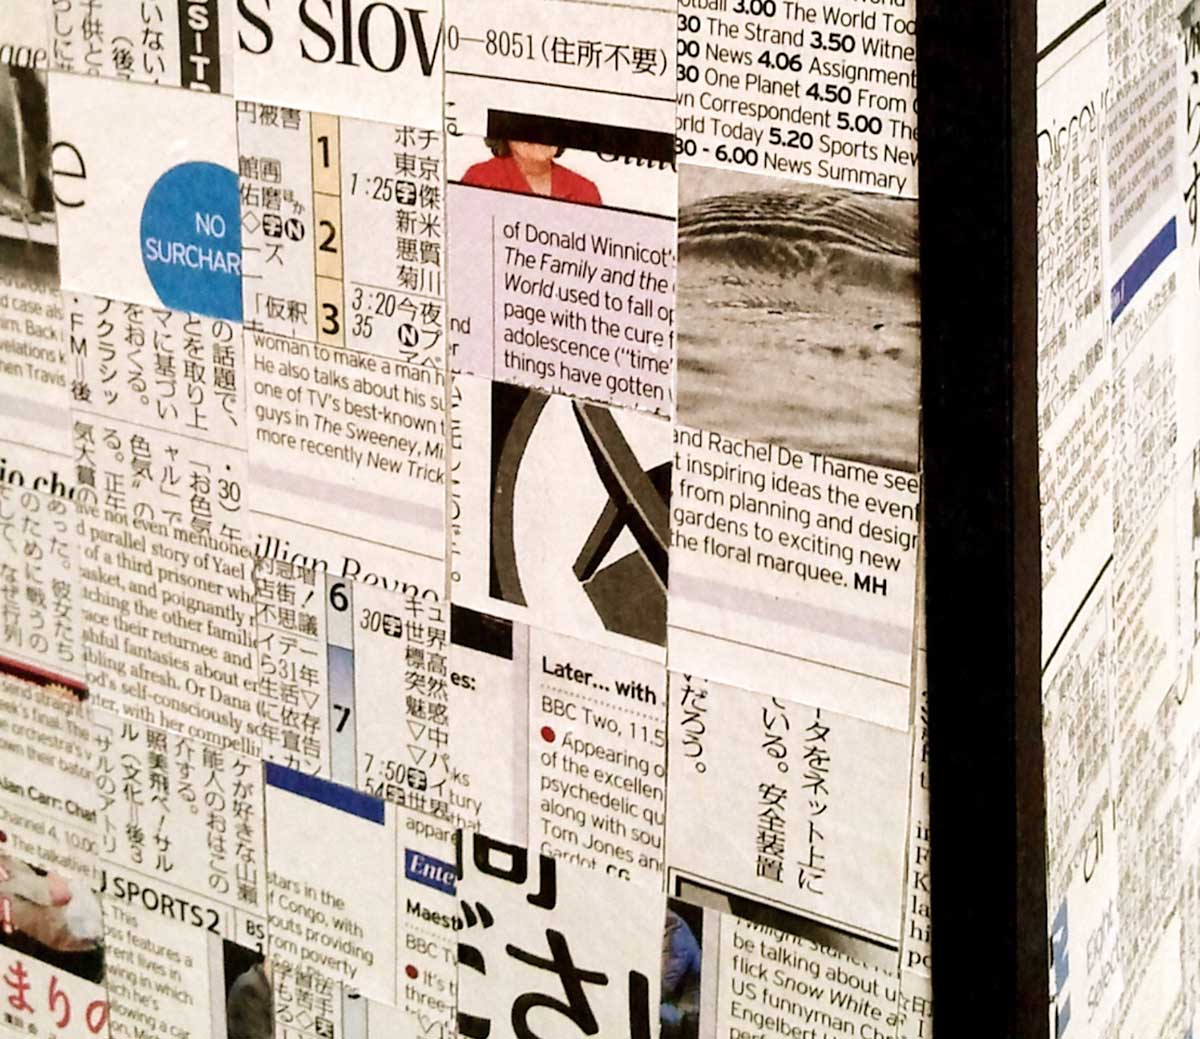 TOWERS OF BABEL (detail) | International newspapers. Tallest tower is 50cms x 28cms x 28cms